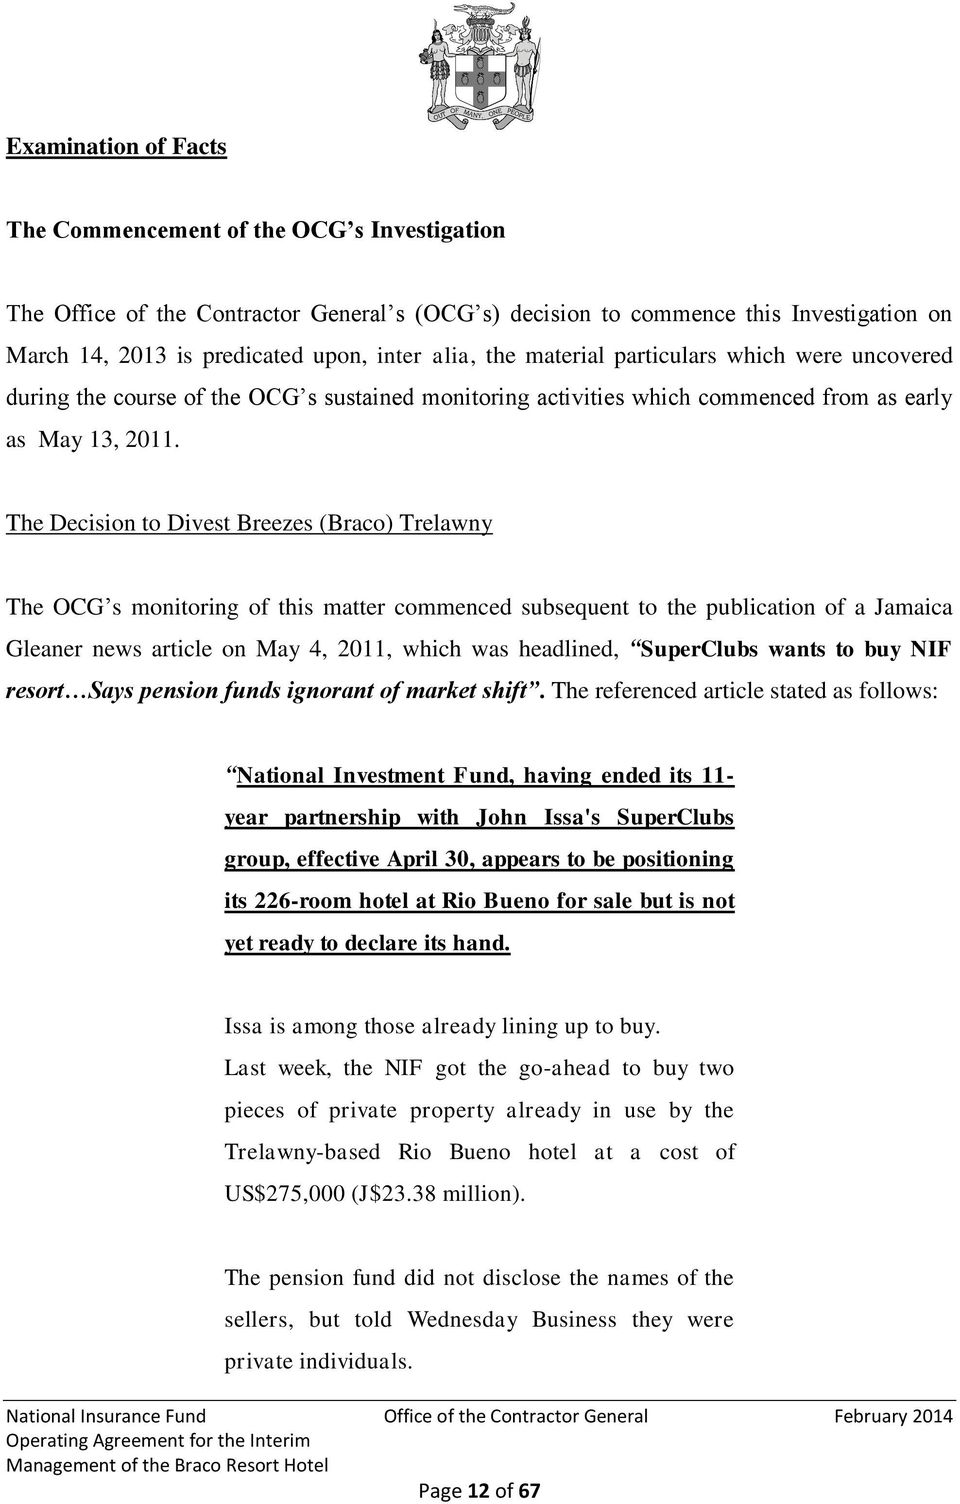 OFFICE OF THE CONTRACTOR GENERAL OF JAMAICA  Special Report